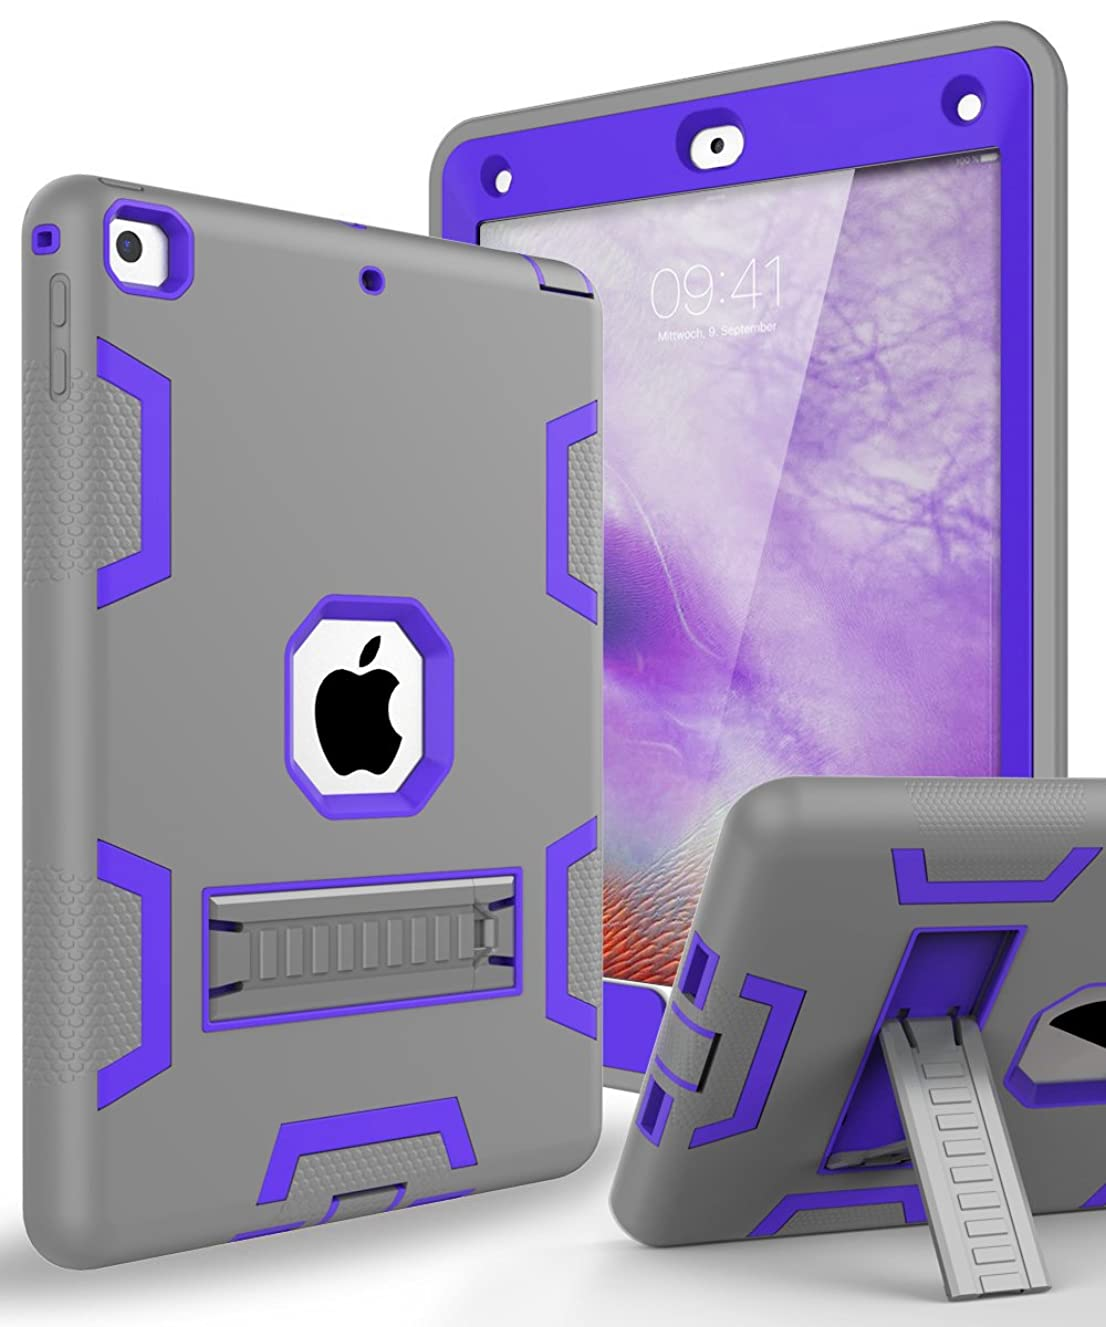 TOPSKY Case for New iPad 9.7 2018,iPad 6th/5th Generation Case,Three Layer Shockproof Armor Defender Protective Case Cover for Apple iPad 9.7 2017/2018 A1893 A1954 A1822 A1823,Grey Purple